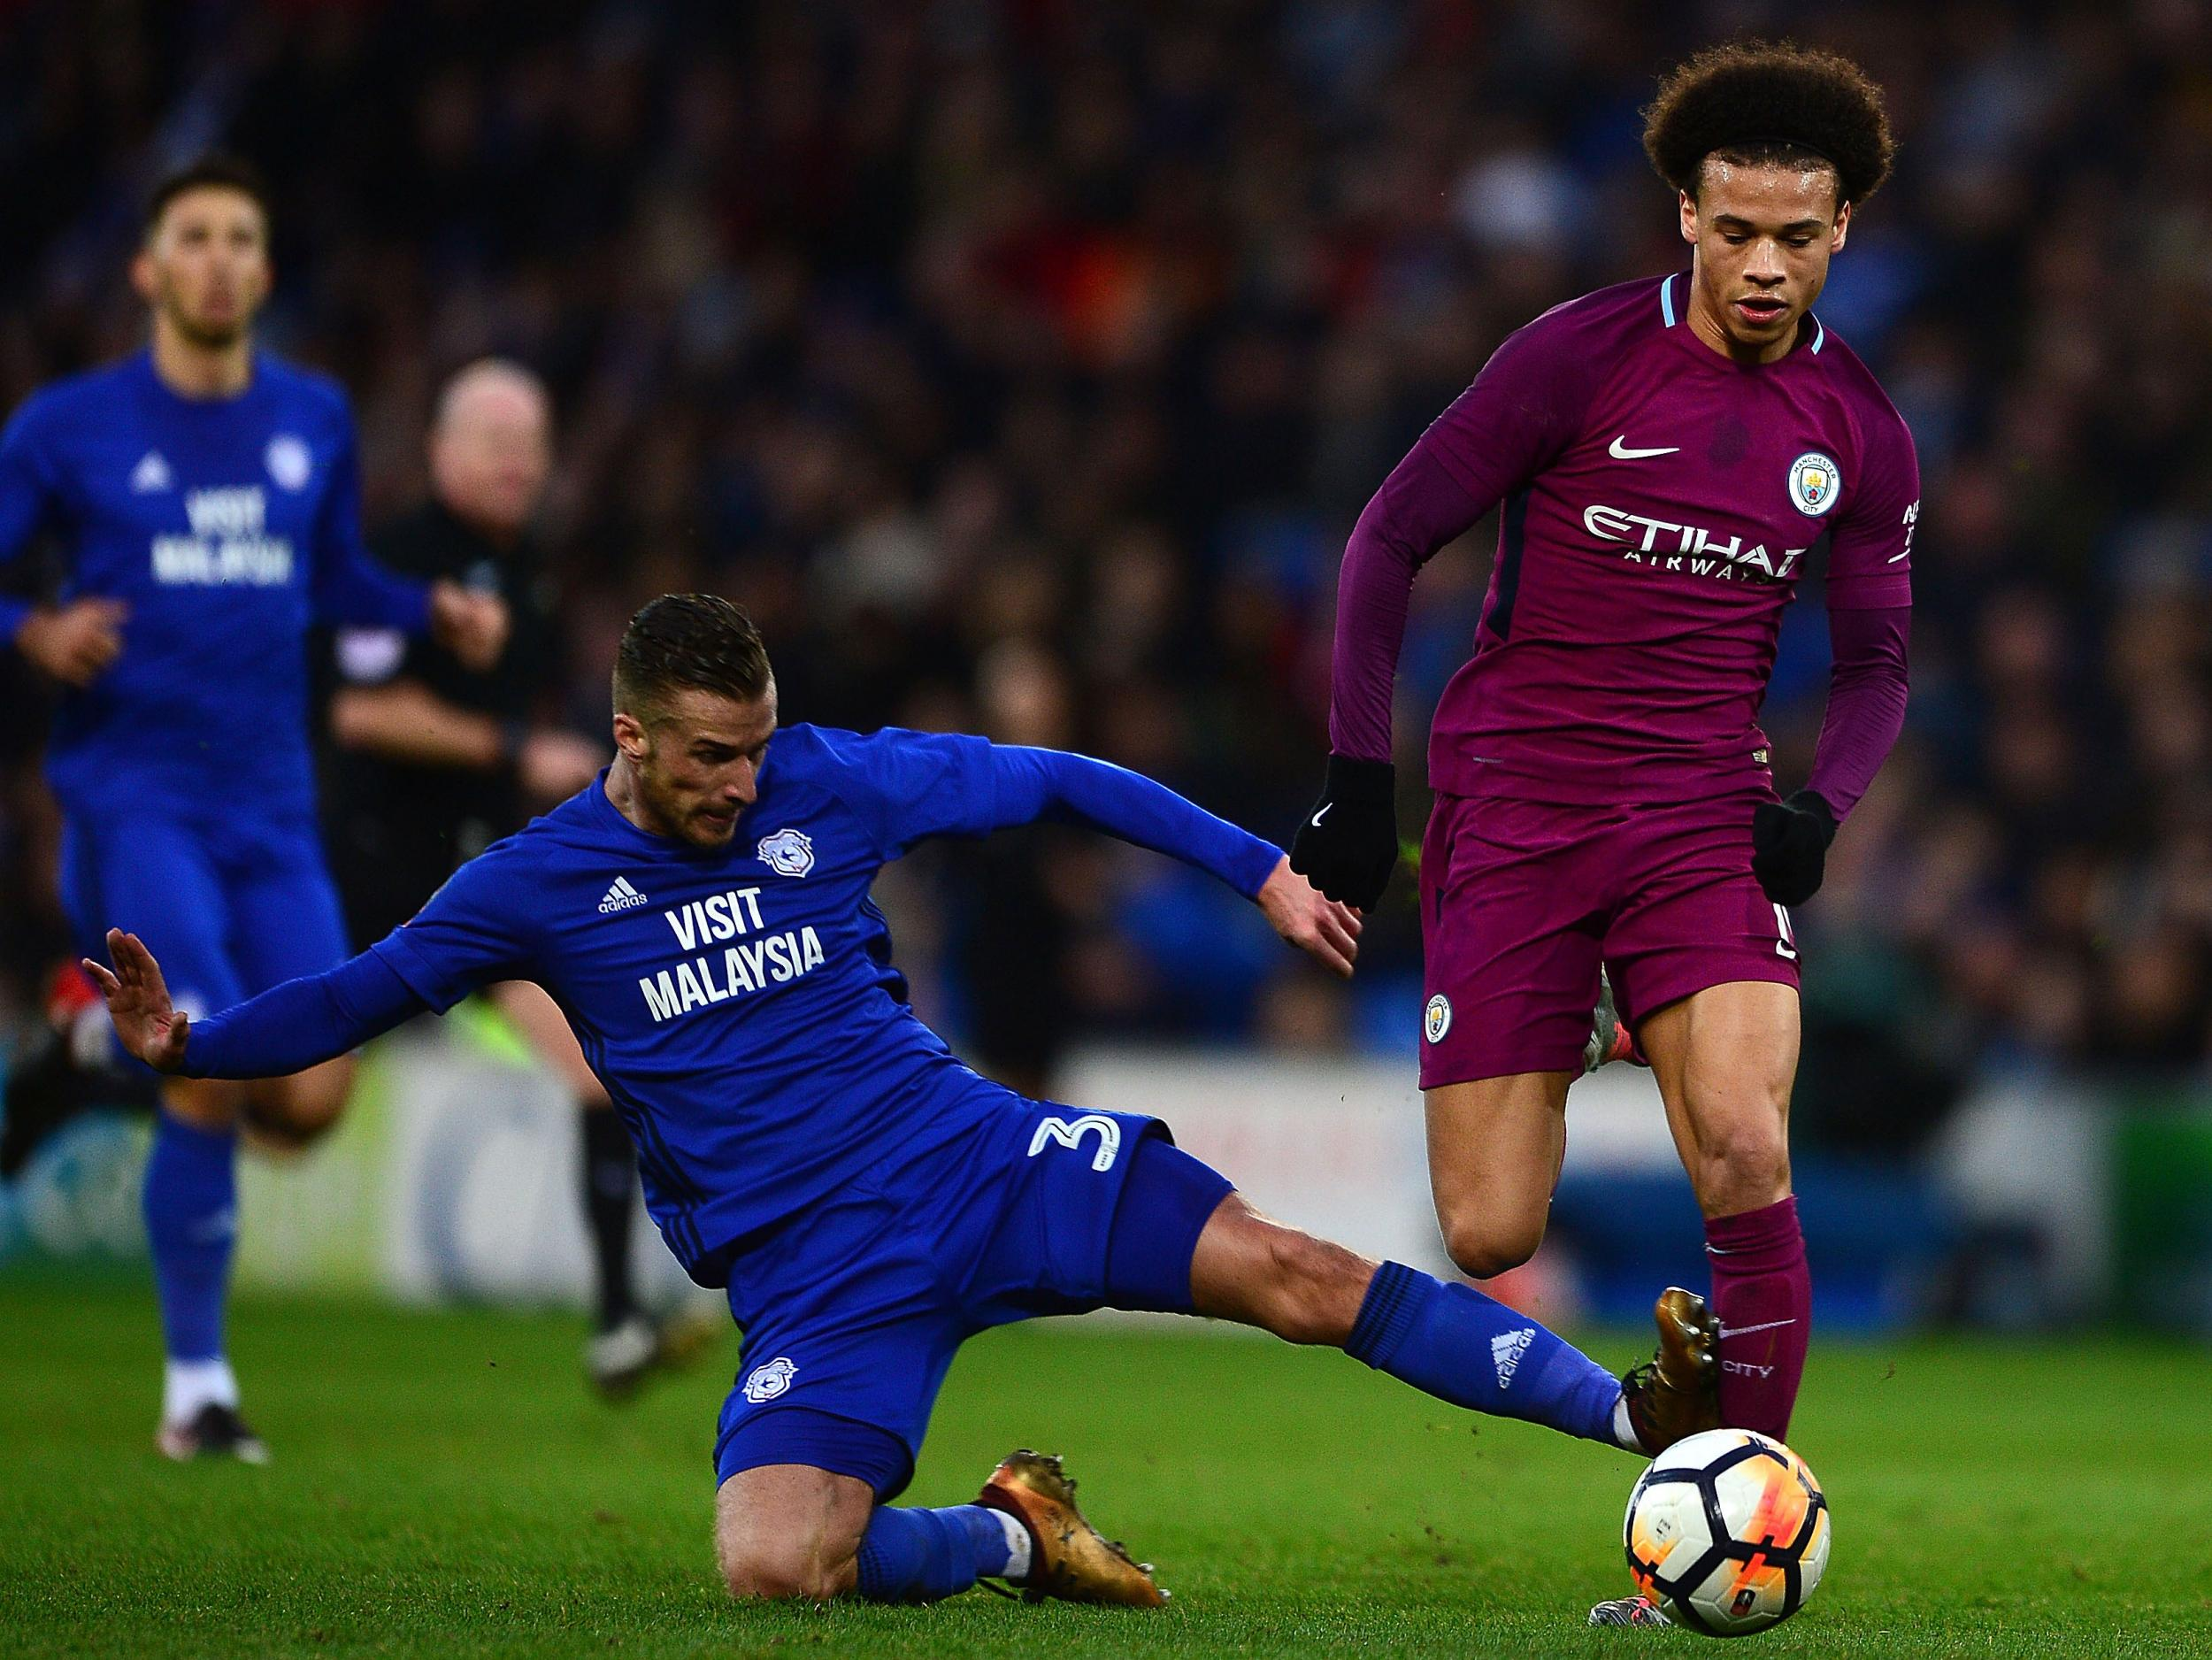 Joe Bennetts Tackle On Leroy Sane Led To Criticism From Pep Guardiola Getty